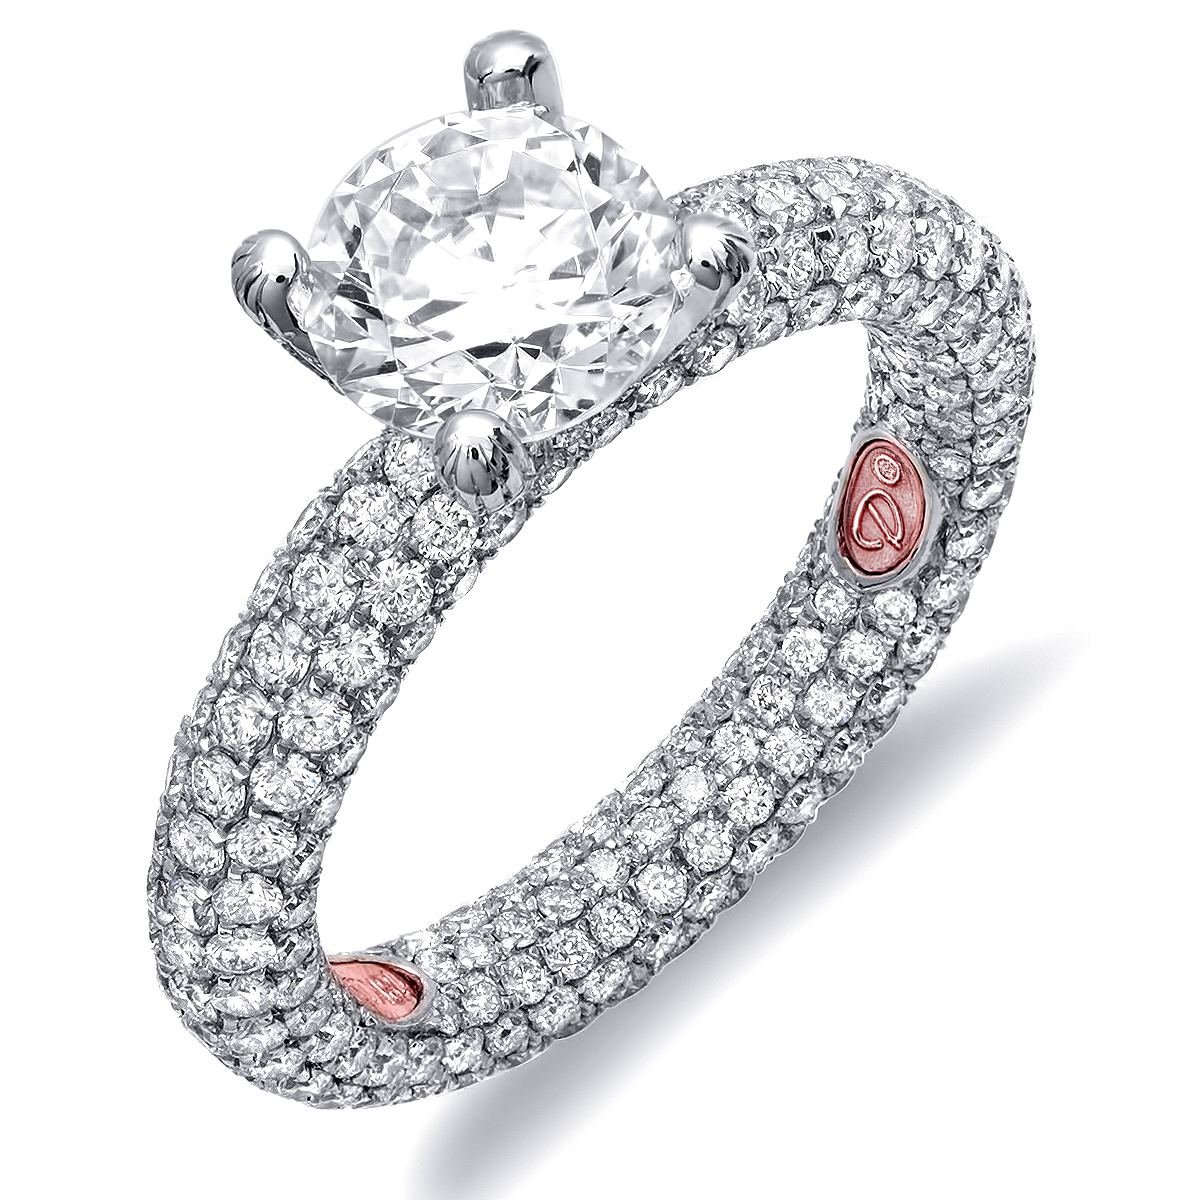 jeweler   demarco bridal jewelry official blog   page 2